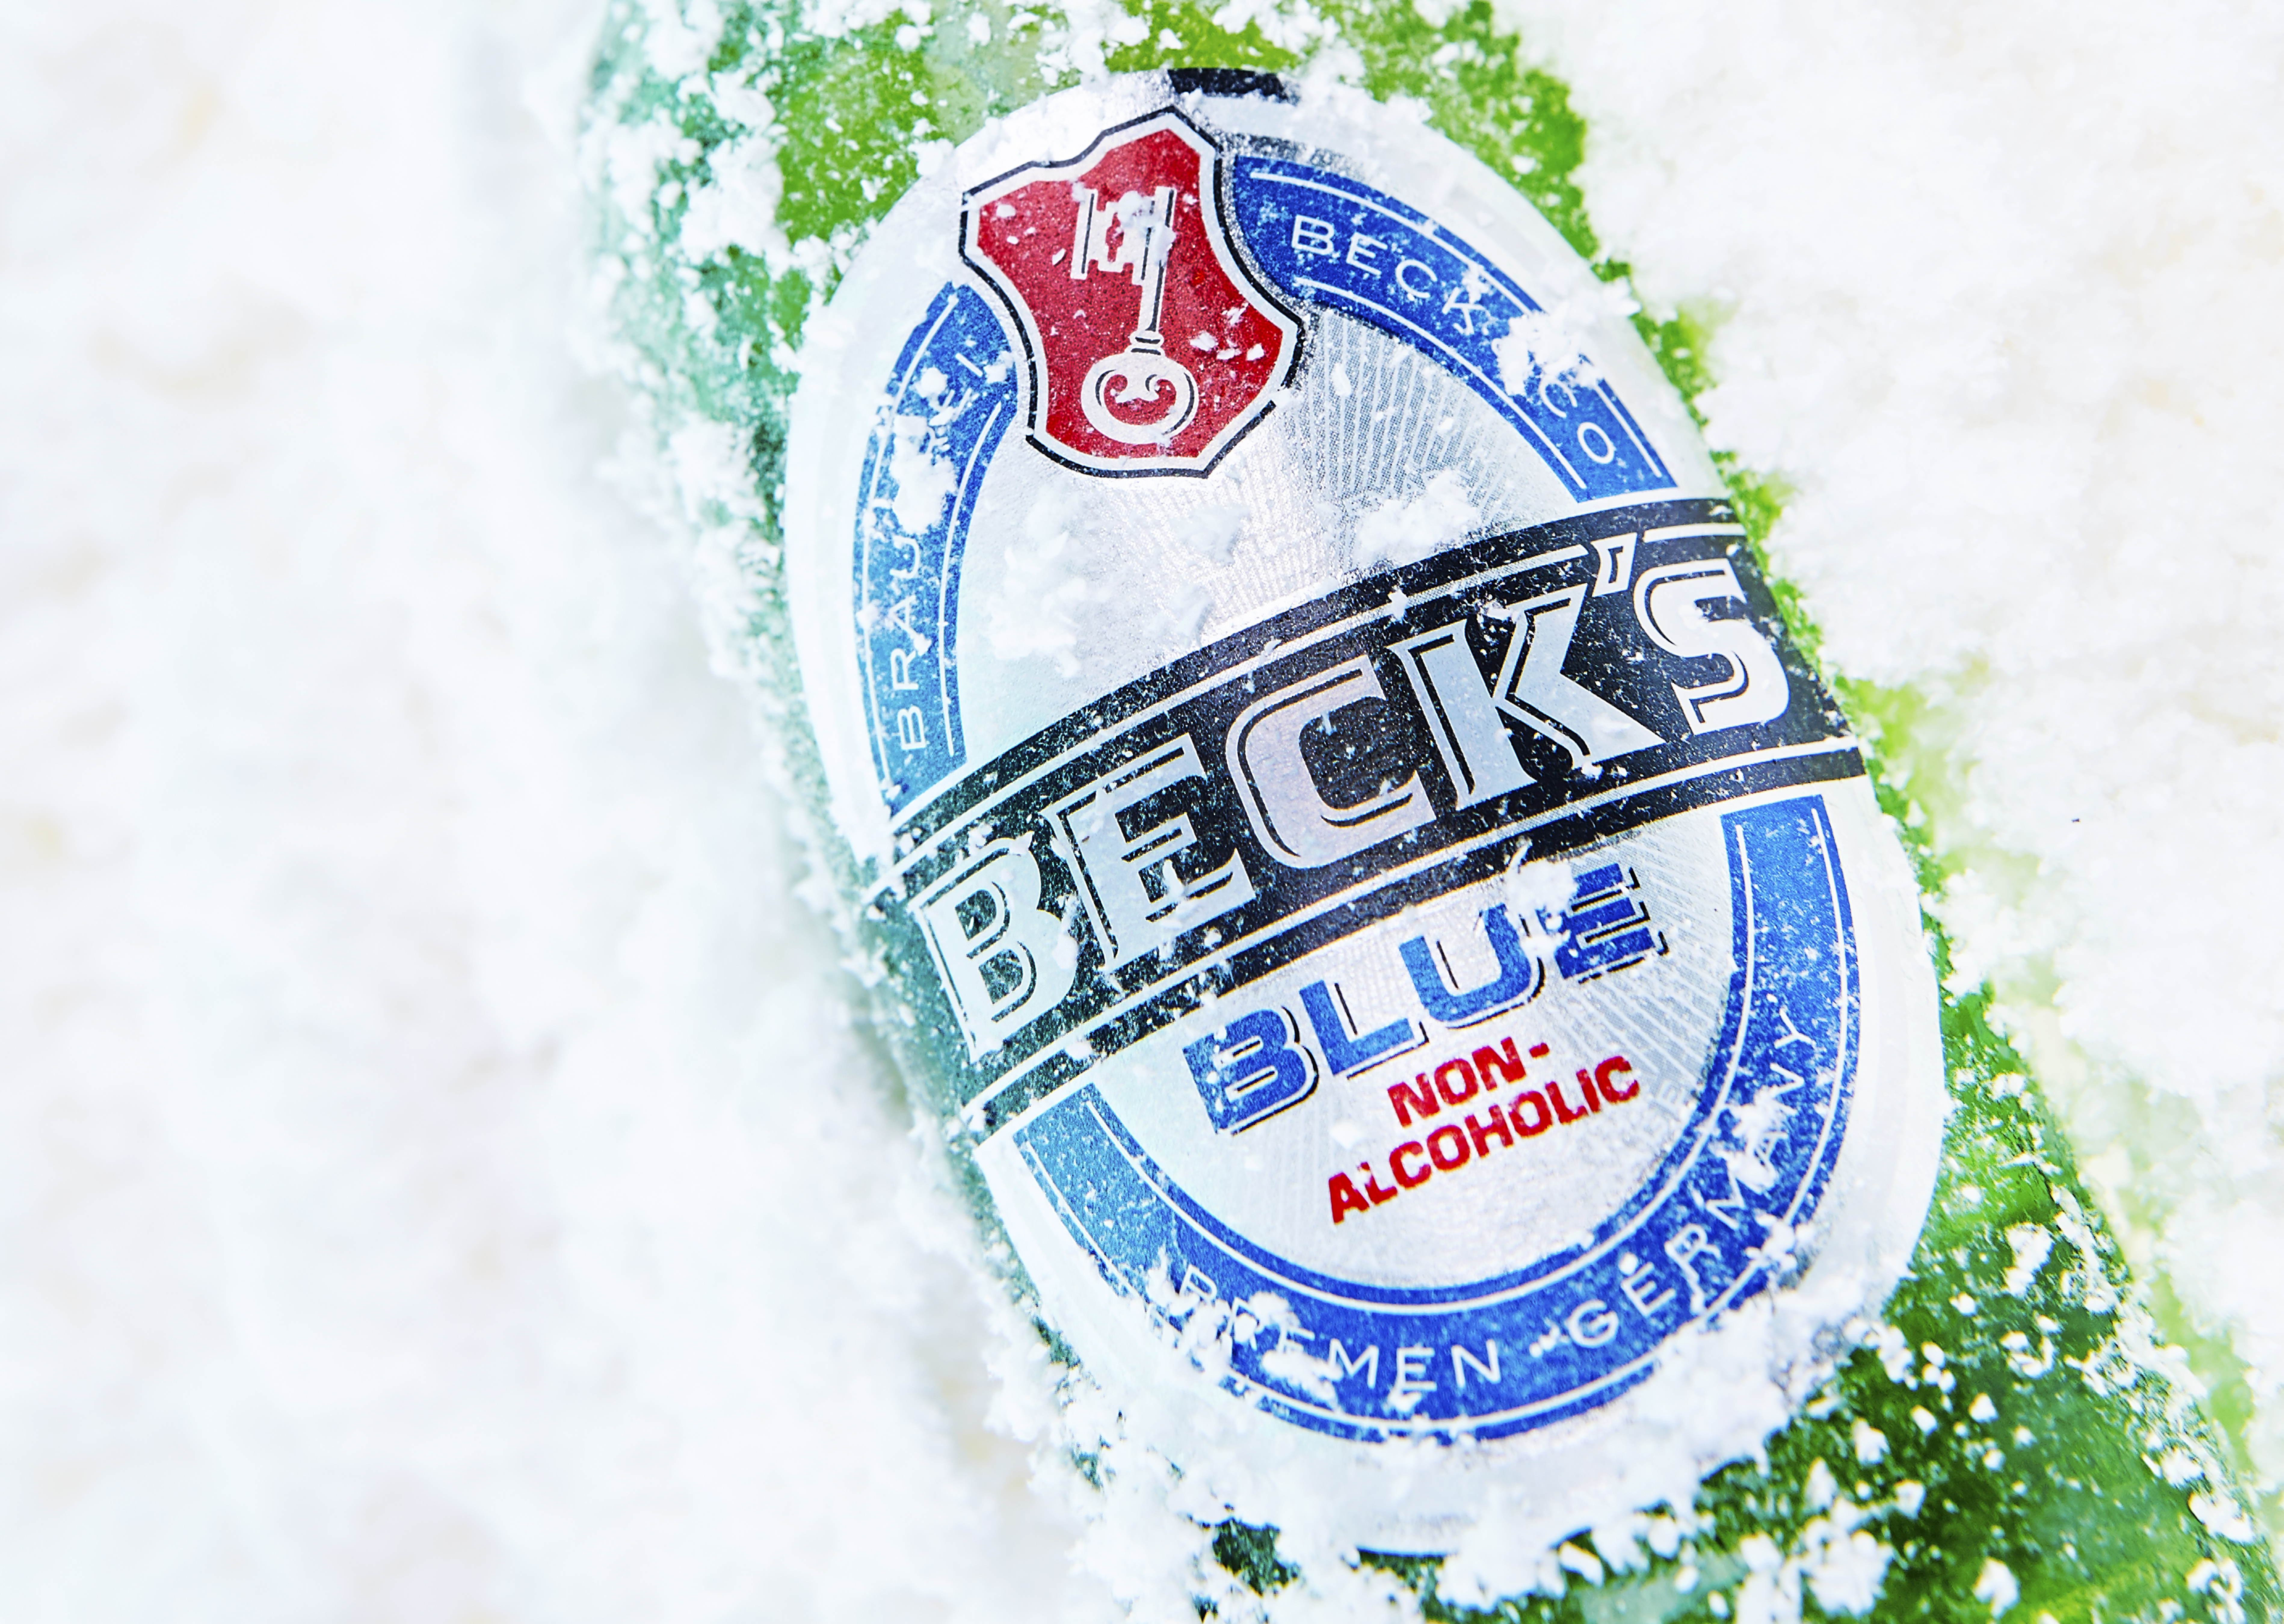 Becks Ice Cold